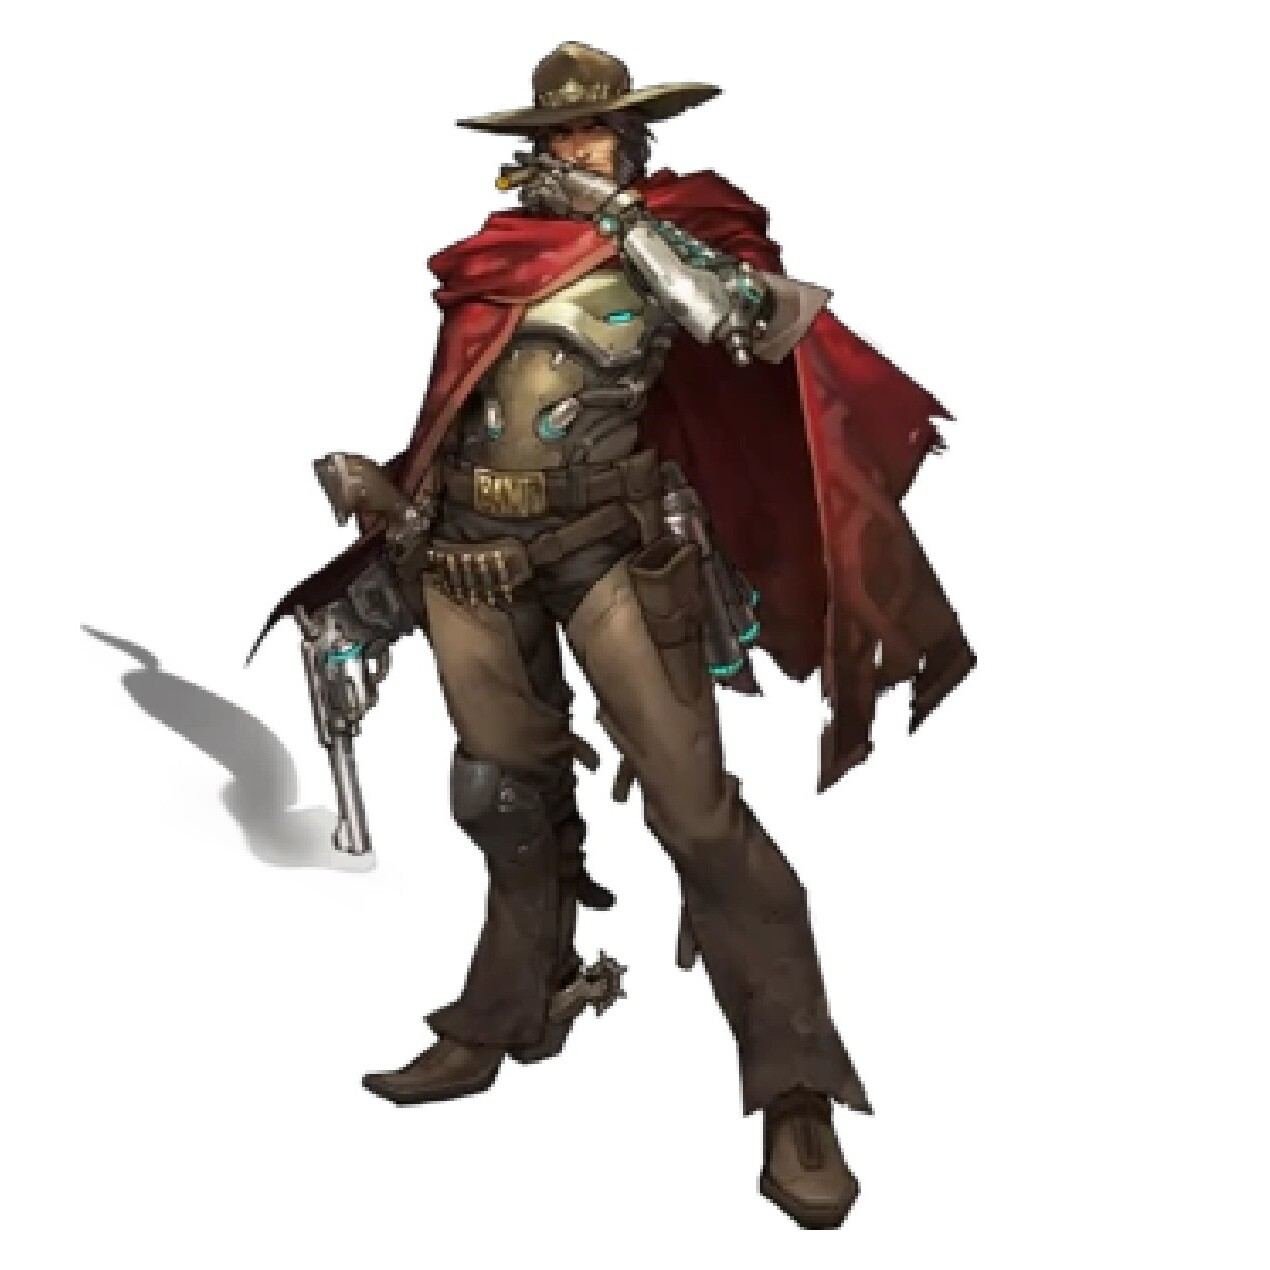 'Overwatch' character McCree is getting a name change